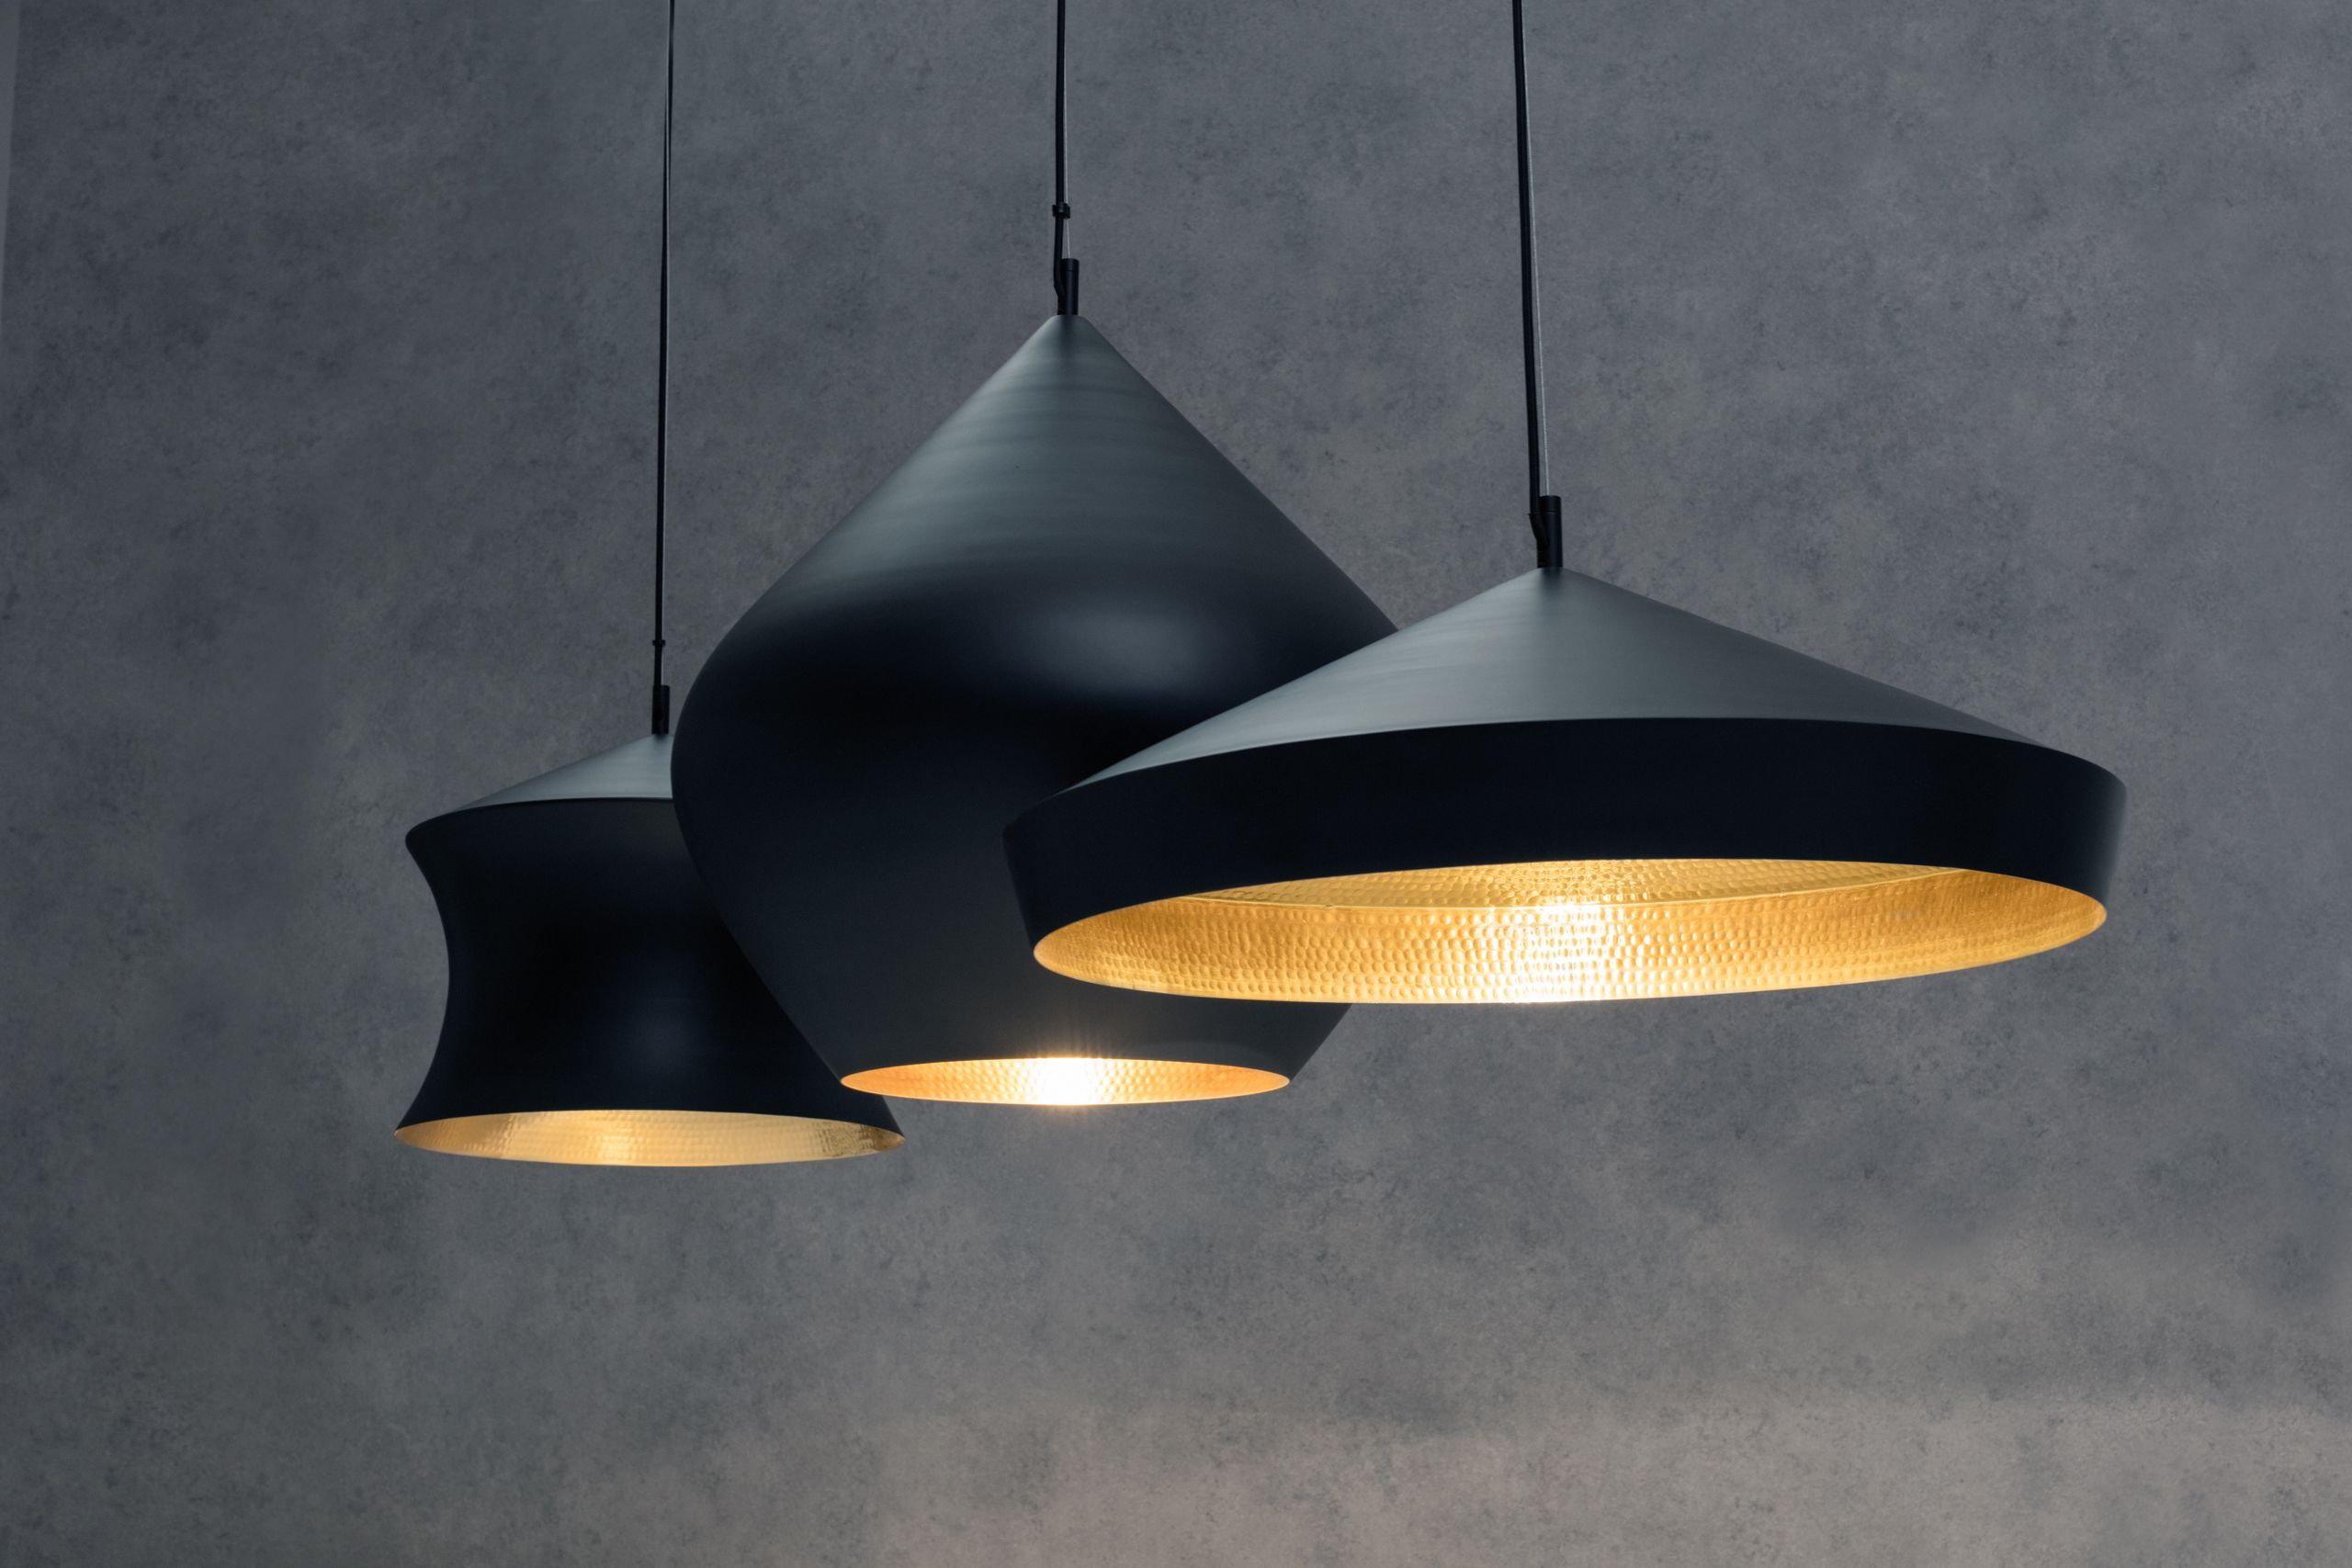 Beat Waist Stout Flat Pendants 15 Off All Tom Dixon Lighting Furniture And Accessories Now Thru October Tom Dixon Beat Ceiling Lights Flat Ceiling Lights